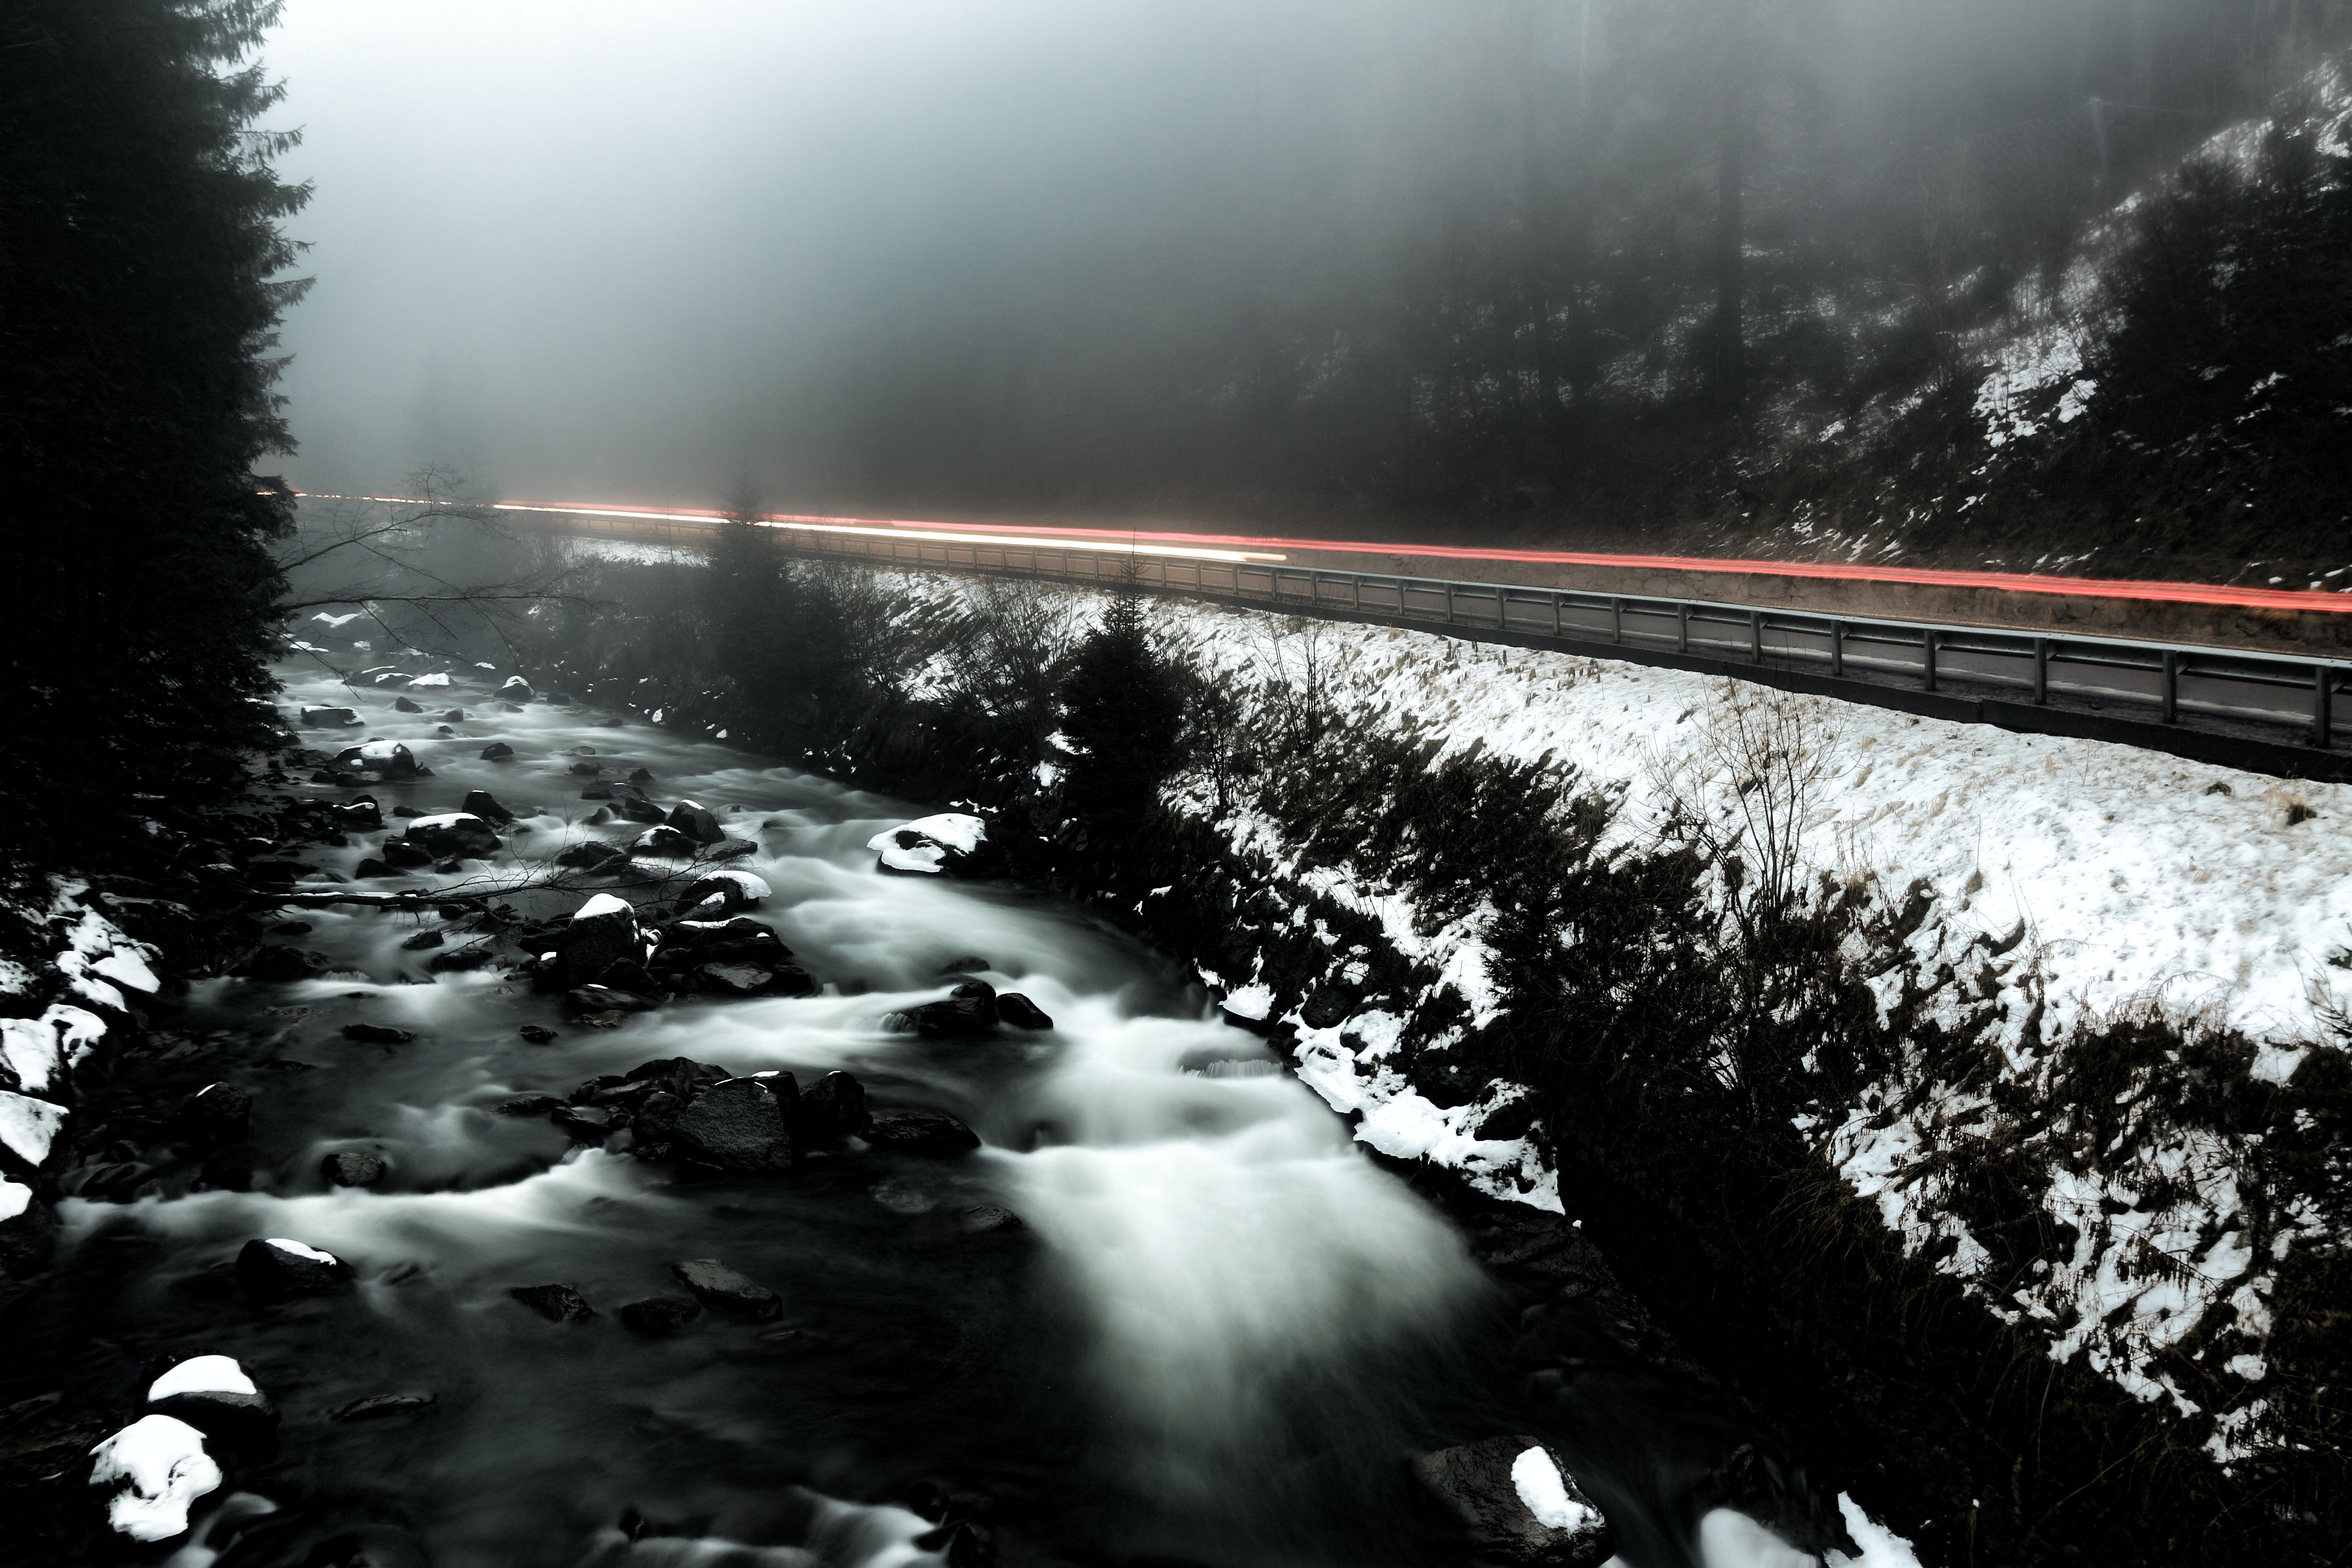 road beside river covered with snow and fogs surrounded by trees